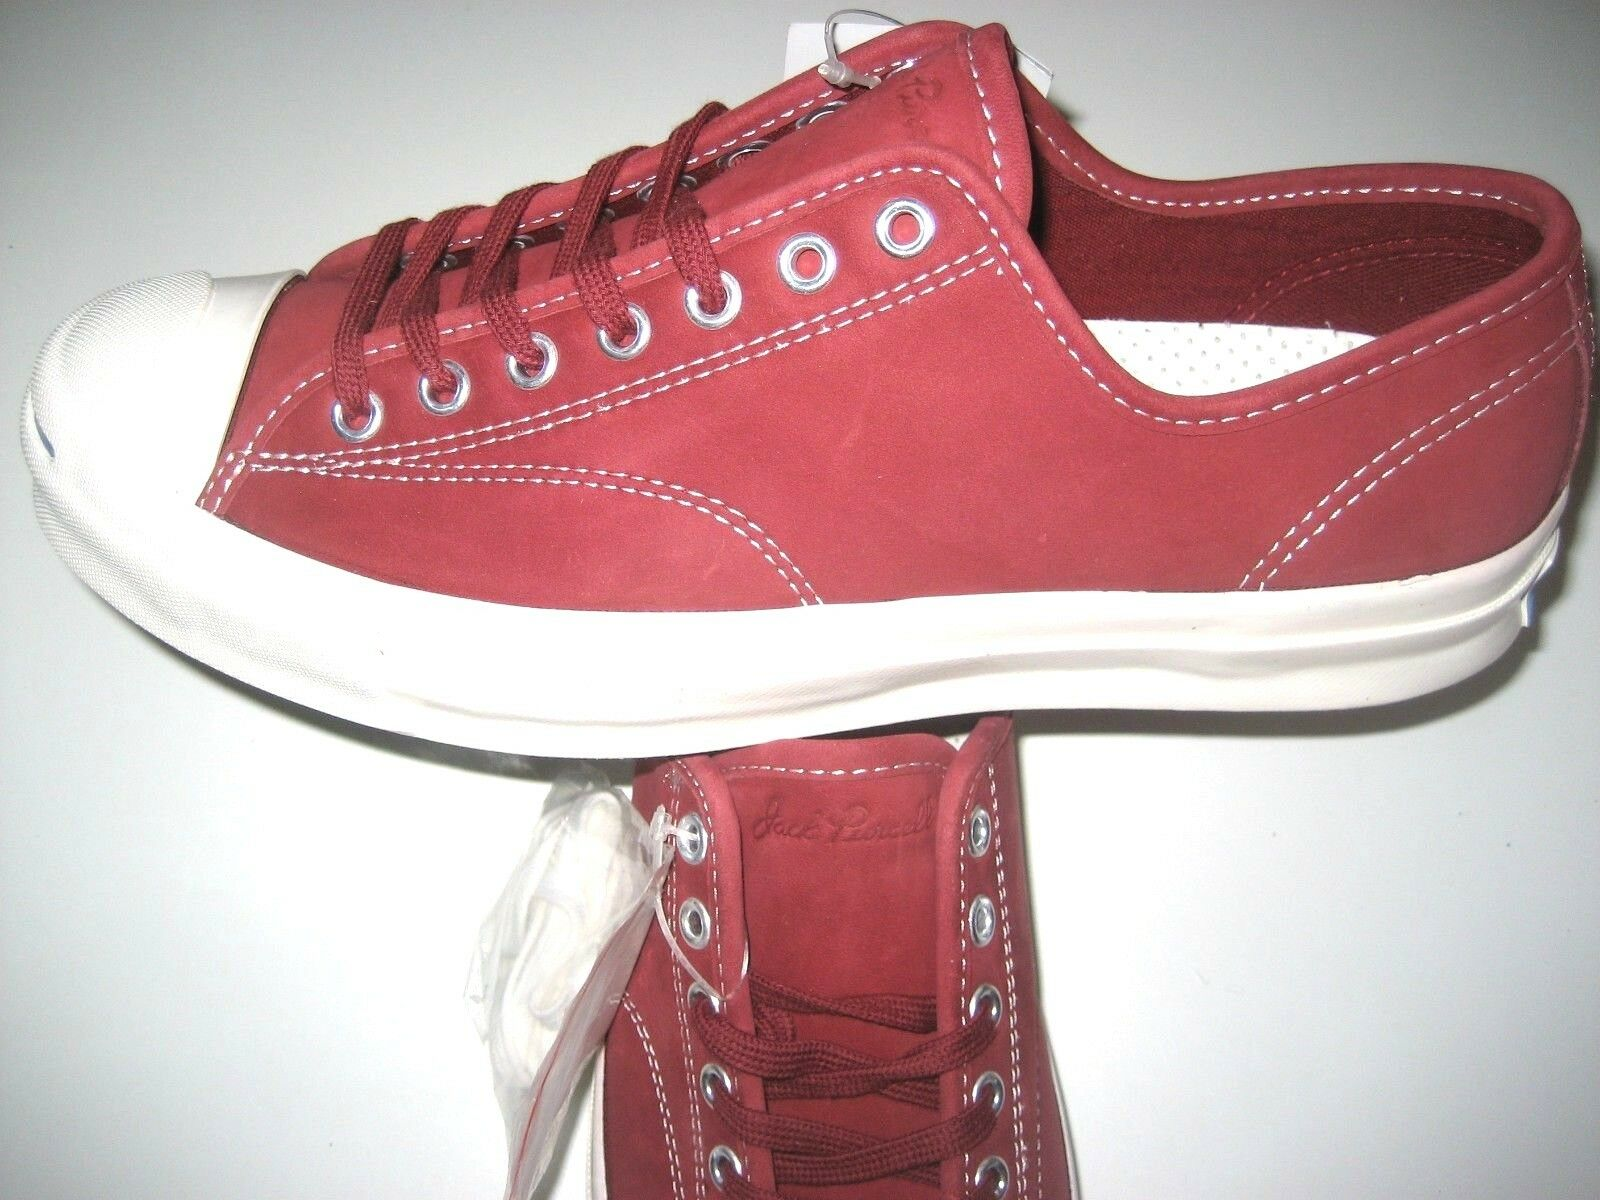 23ee64bae70e Converse Converse Converse Mens Jack Purcell JP Signature OX Red Block  Leather shoes Size 9.5 New ...